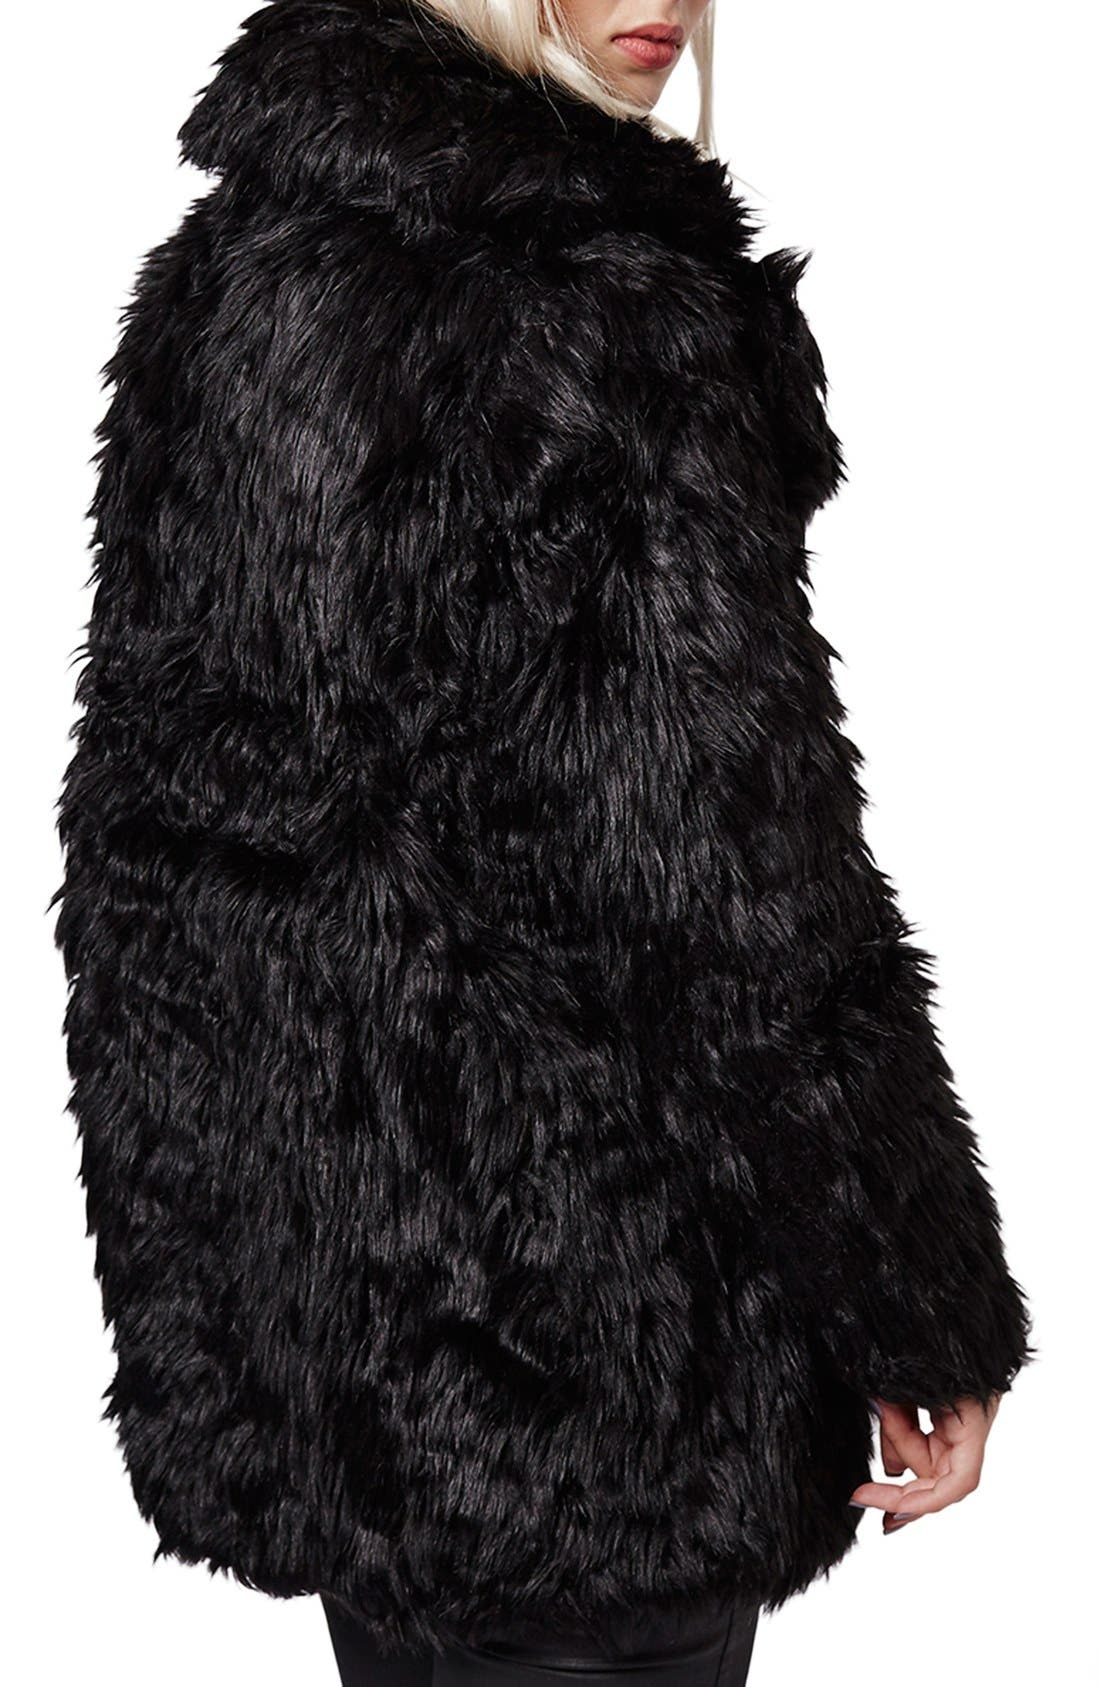 Urban Shaggy Faux Fur Coat,                             Alternate thumbnail 4, color,                             001